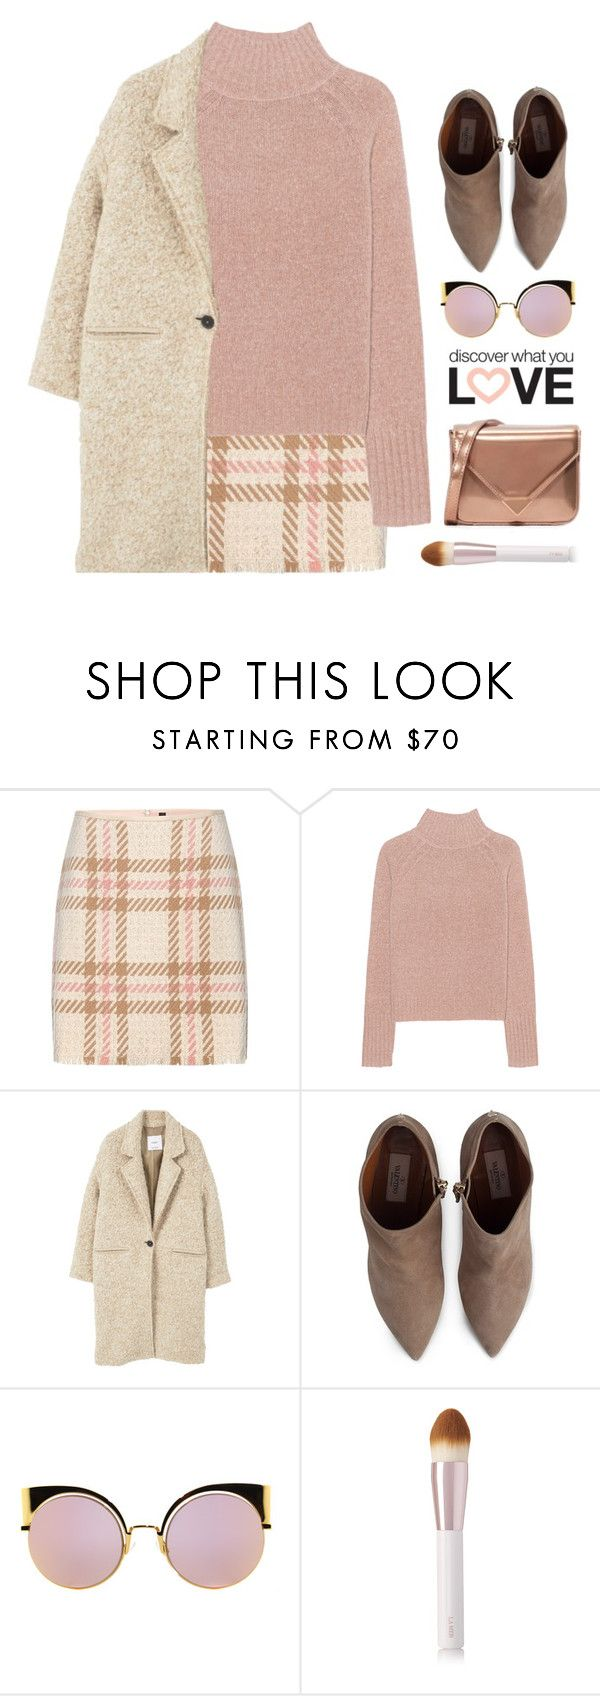 """""""Untitled #436"""" by ino-6283 ❤ liked on Polyvore featuring MARC CAIN, 360 Sweater, MANGO, Valentino, Fendi, La Mer and Alexander Wang"""